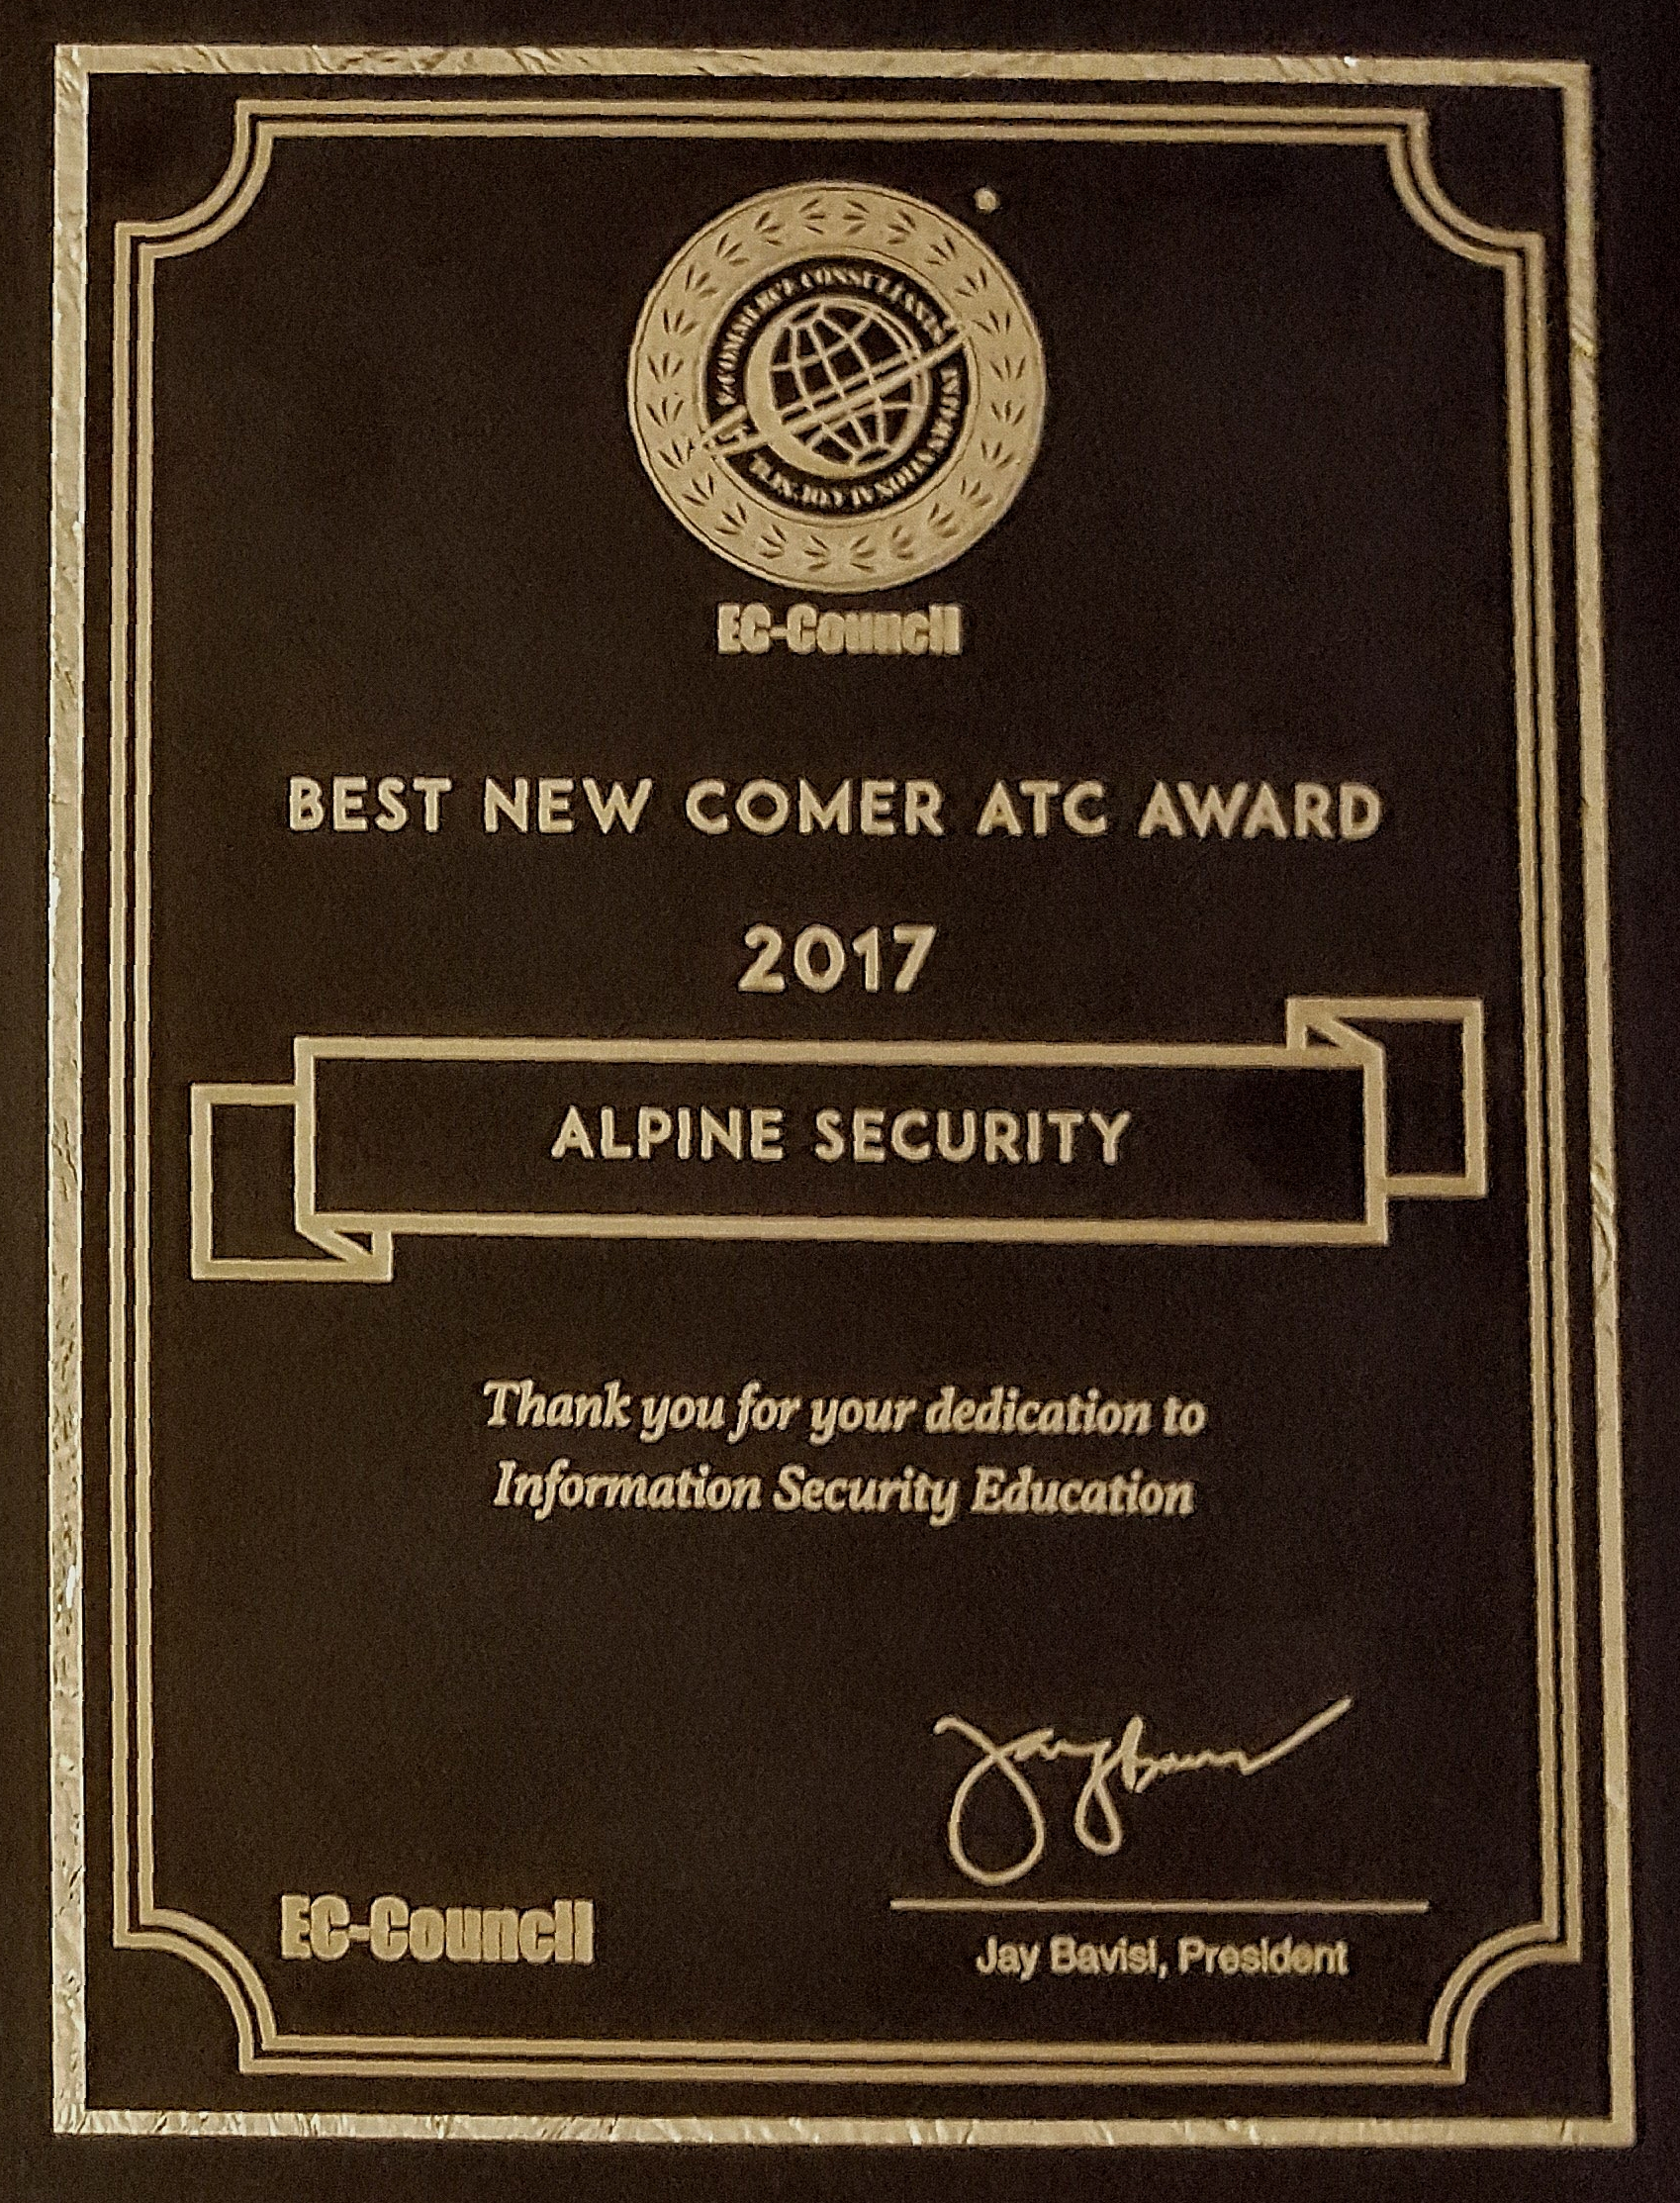 alpine-security-ec-council-atc-best-newcomer-award.jpg